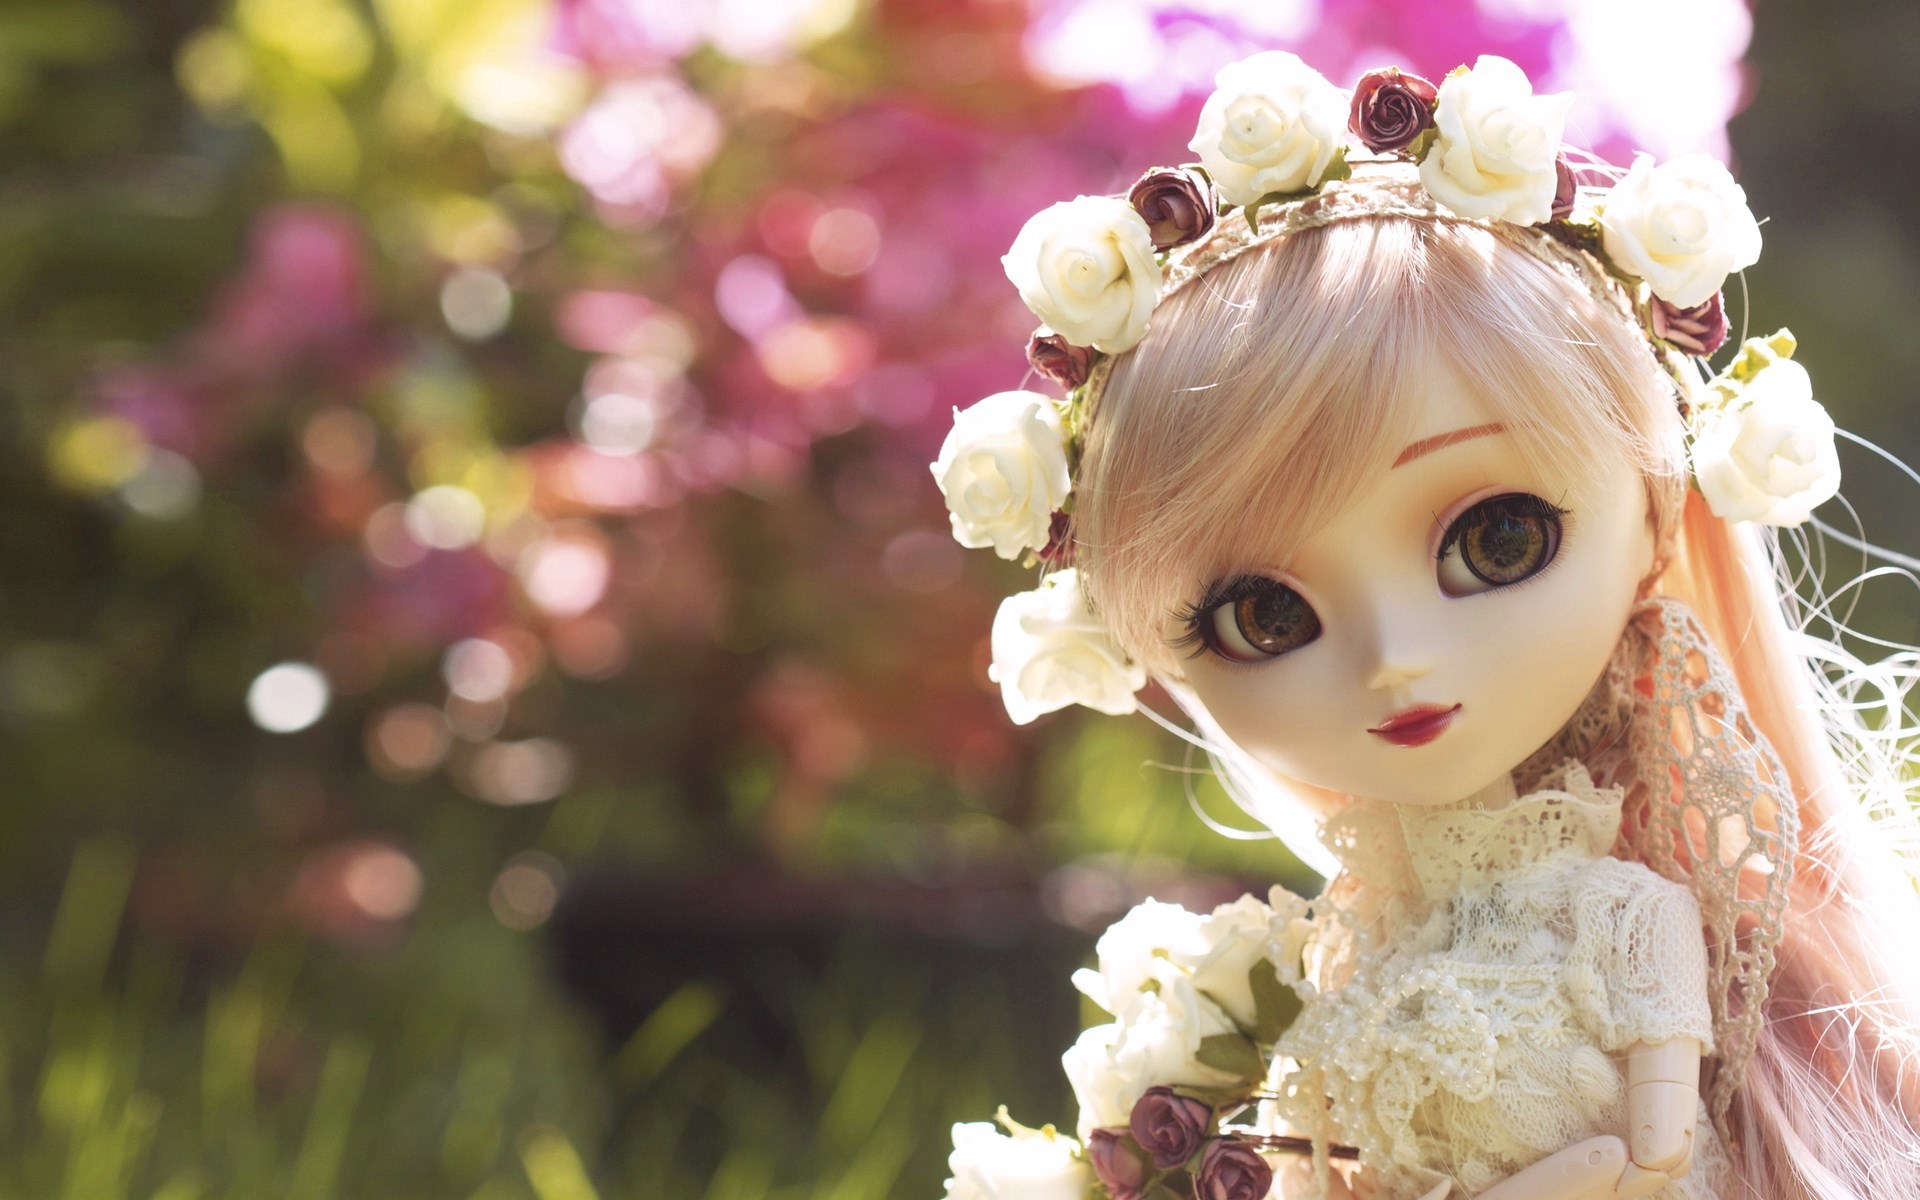 Toy Doll Flowers